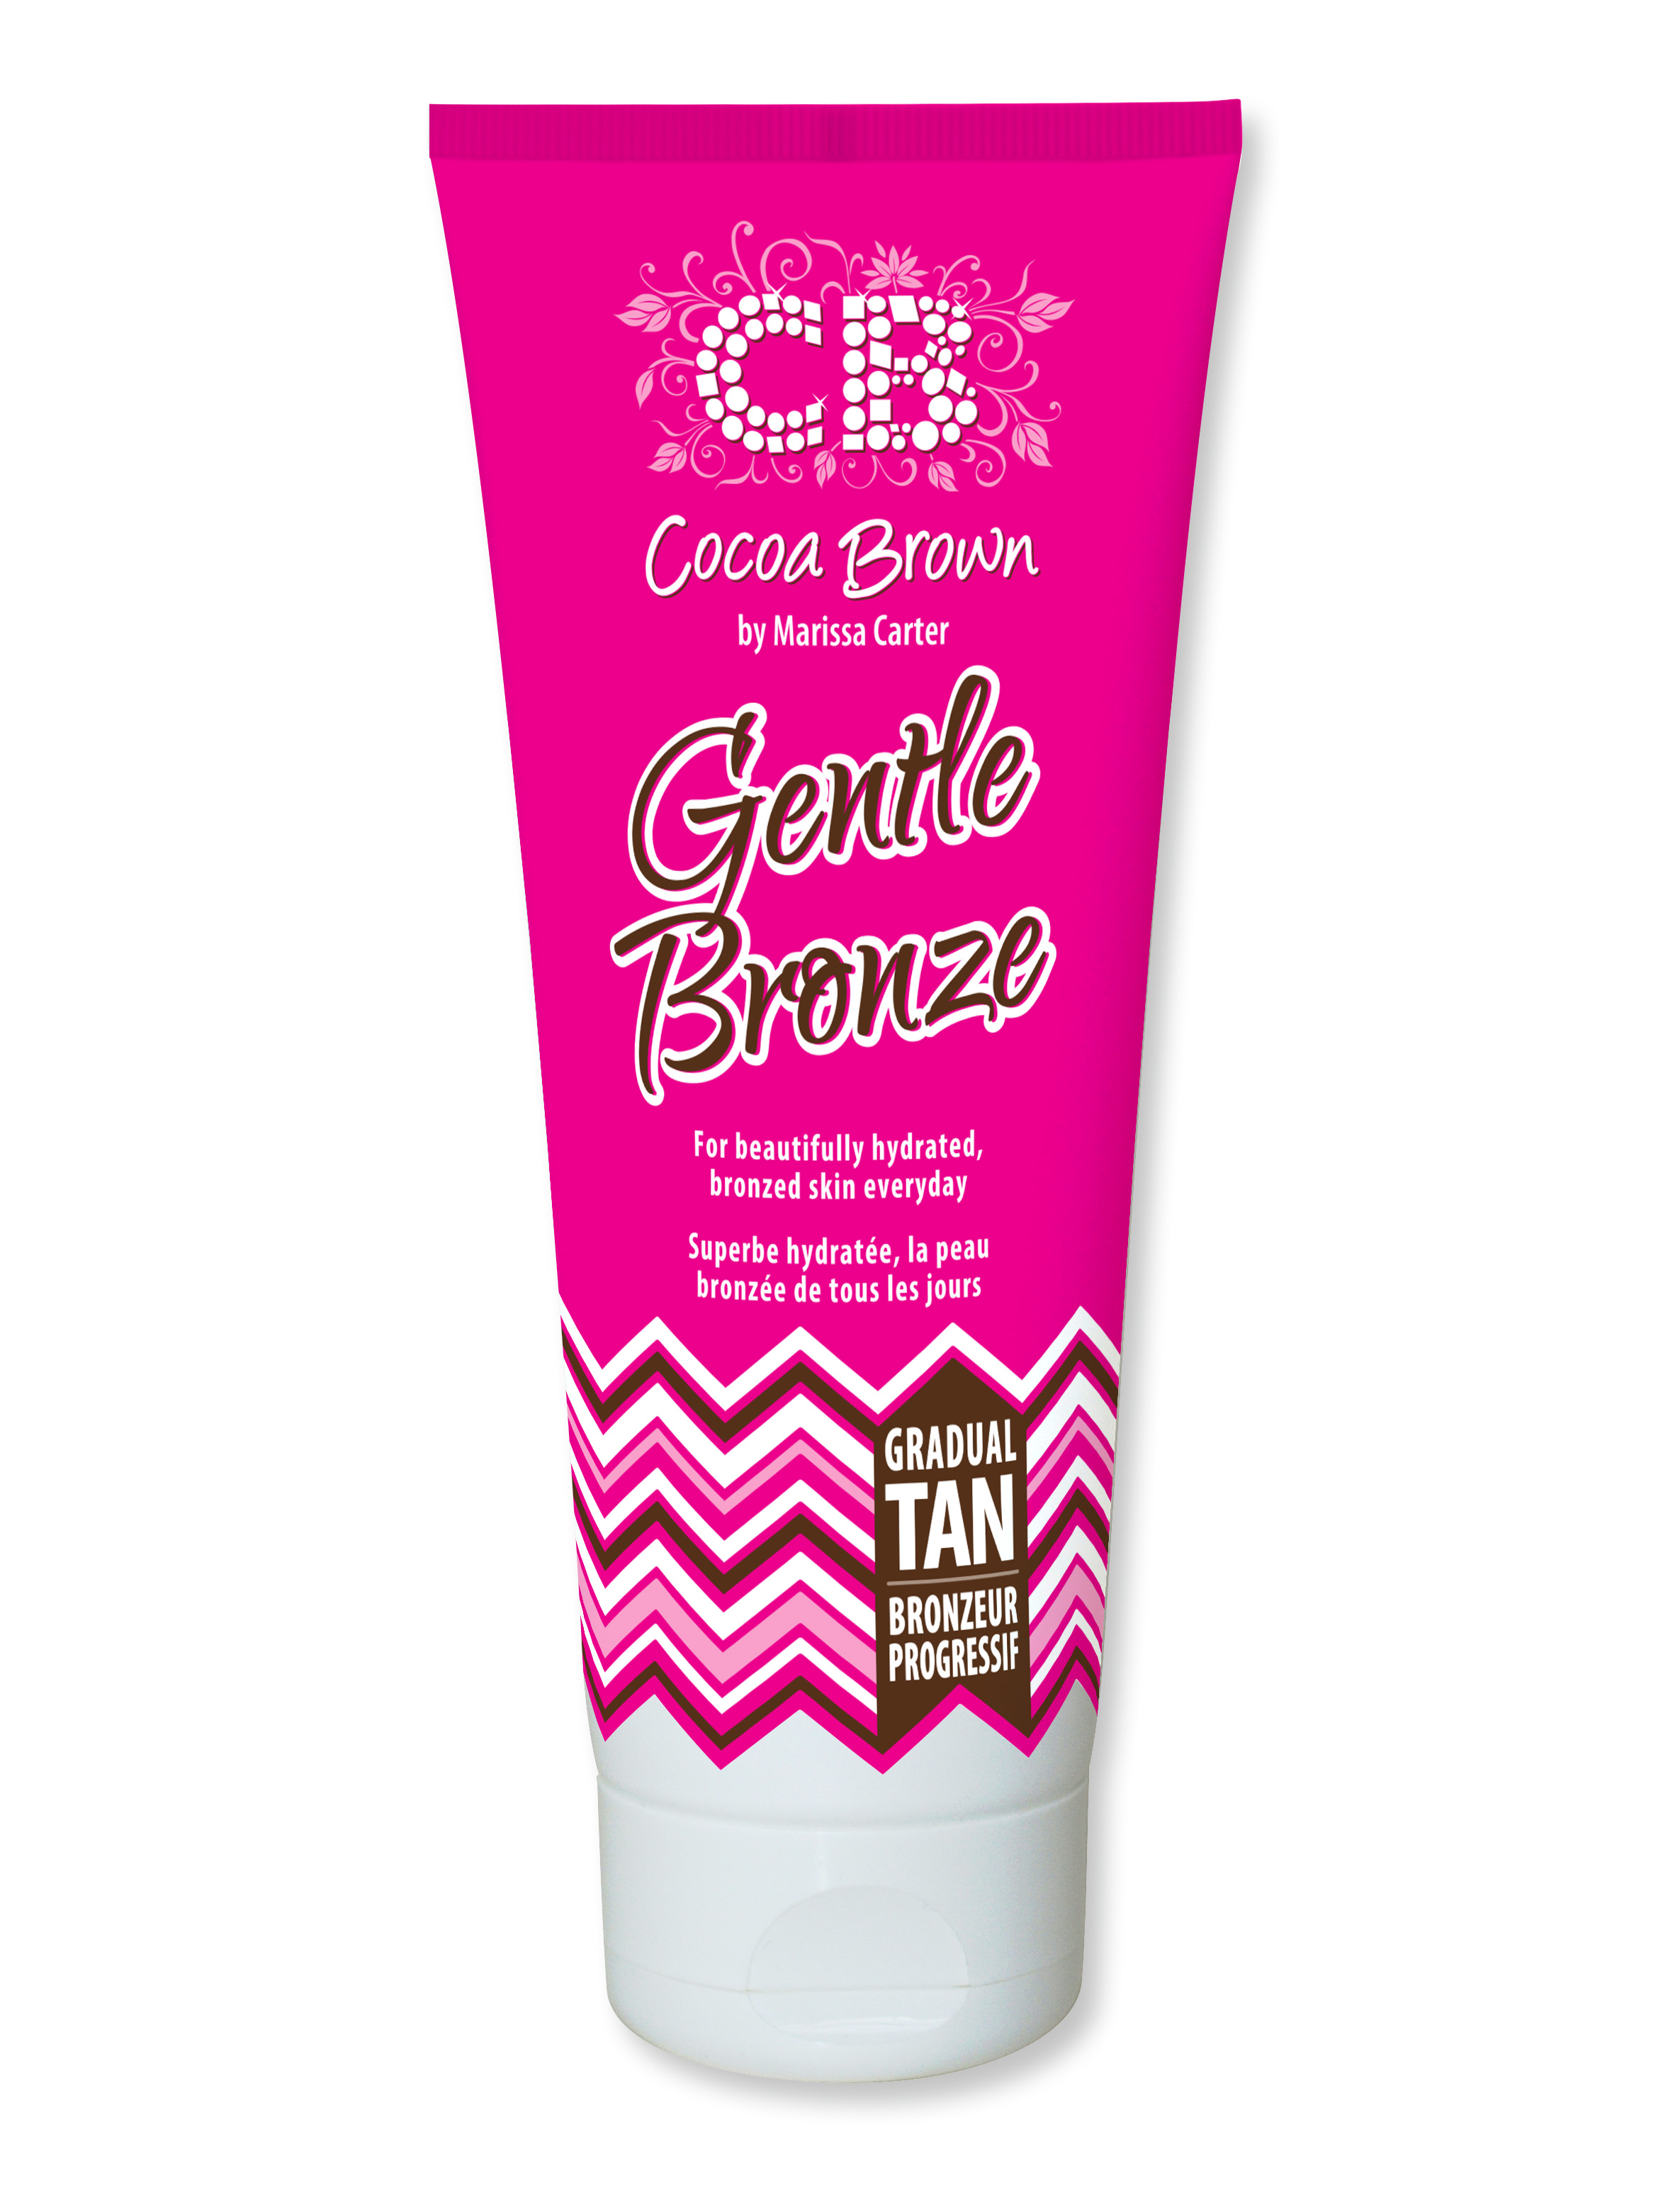 cocoa brown shampoo review